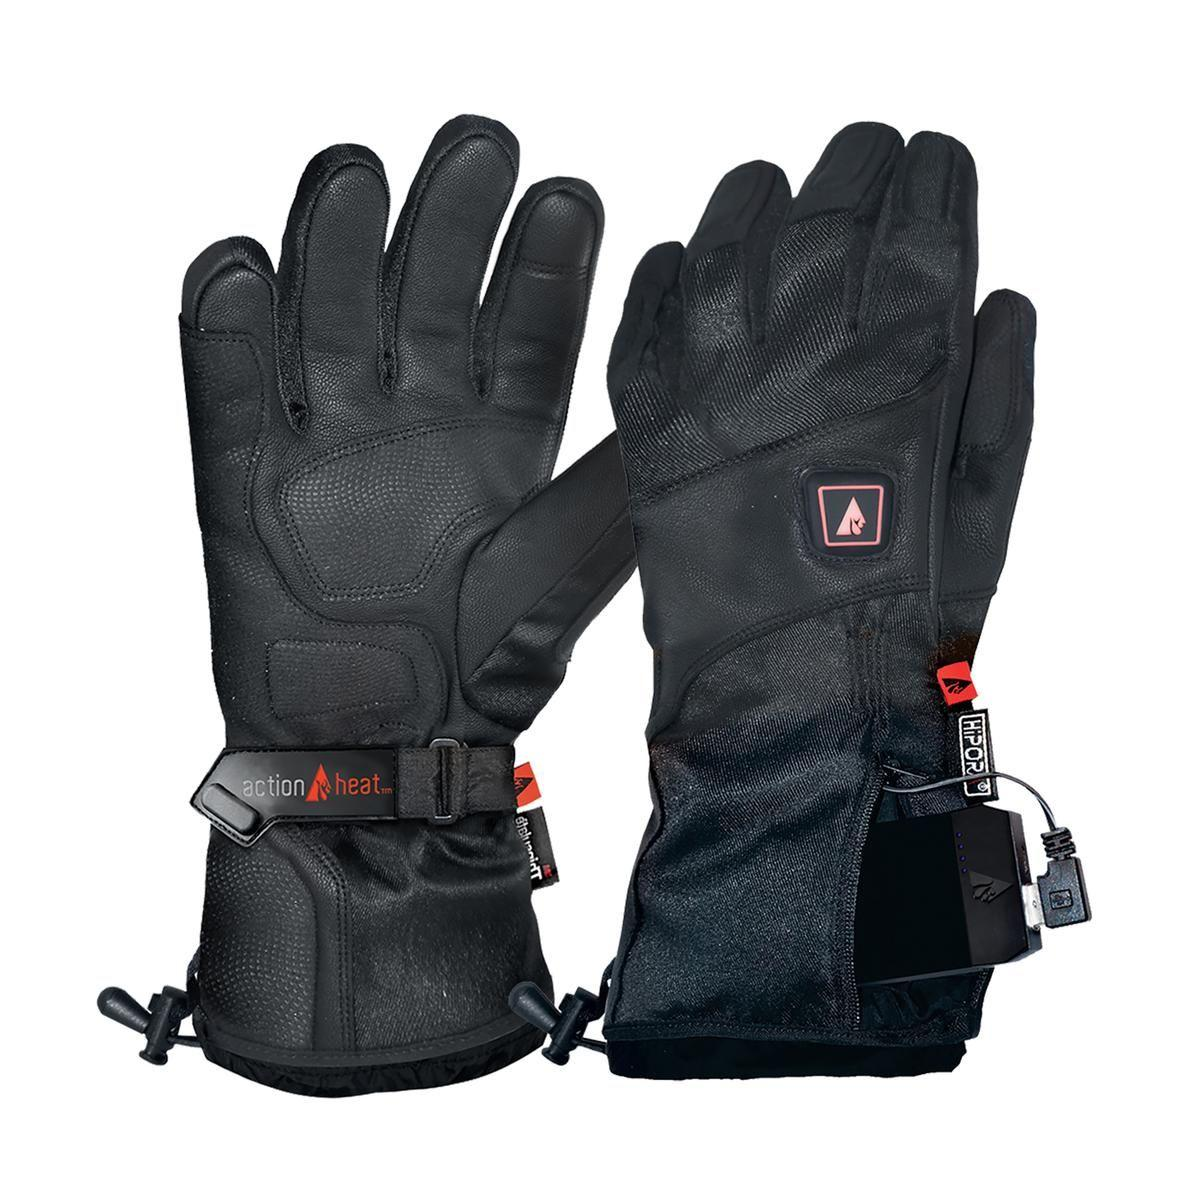 Open Box ActionHeat 5V Premium Heated Gloves - Men's - Heated